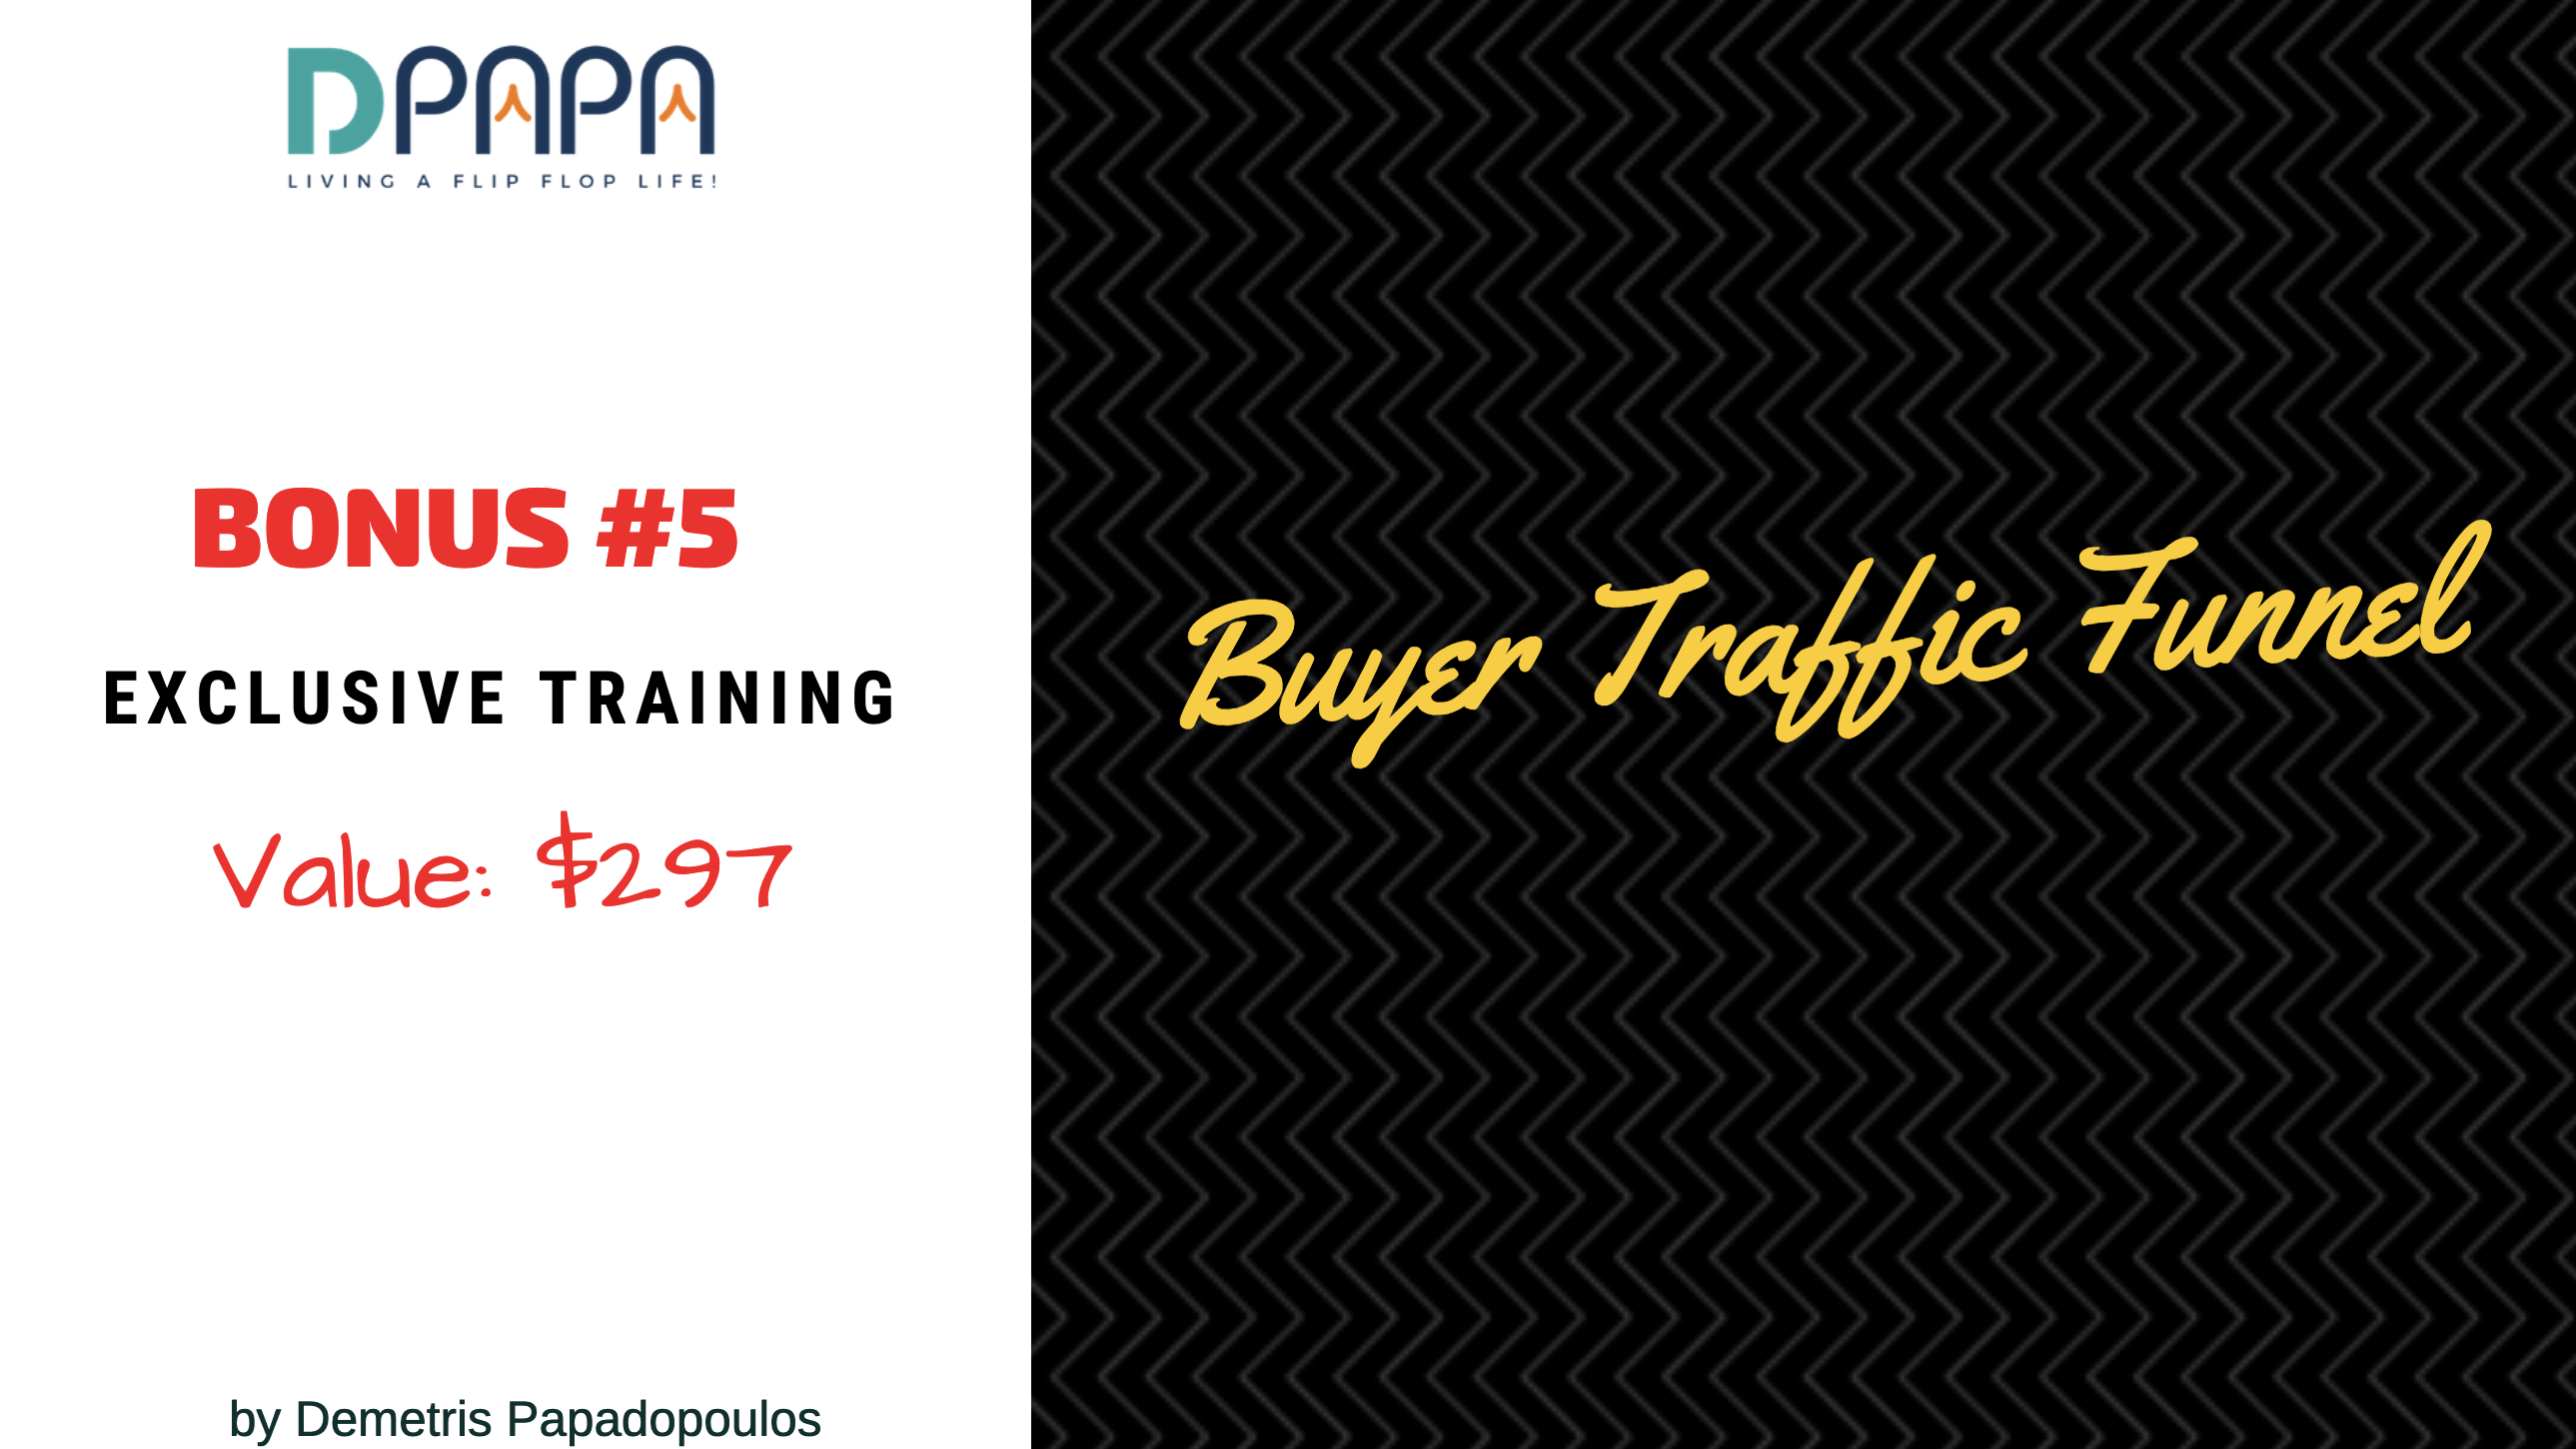 How To Combine CPA Affiliate Marketing & FB ads to Turn $5 into $163 in 30 min 11